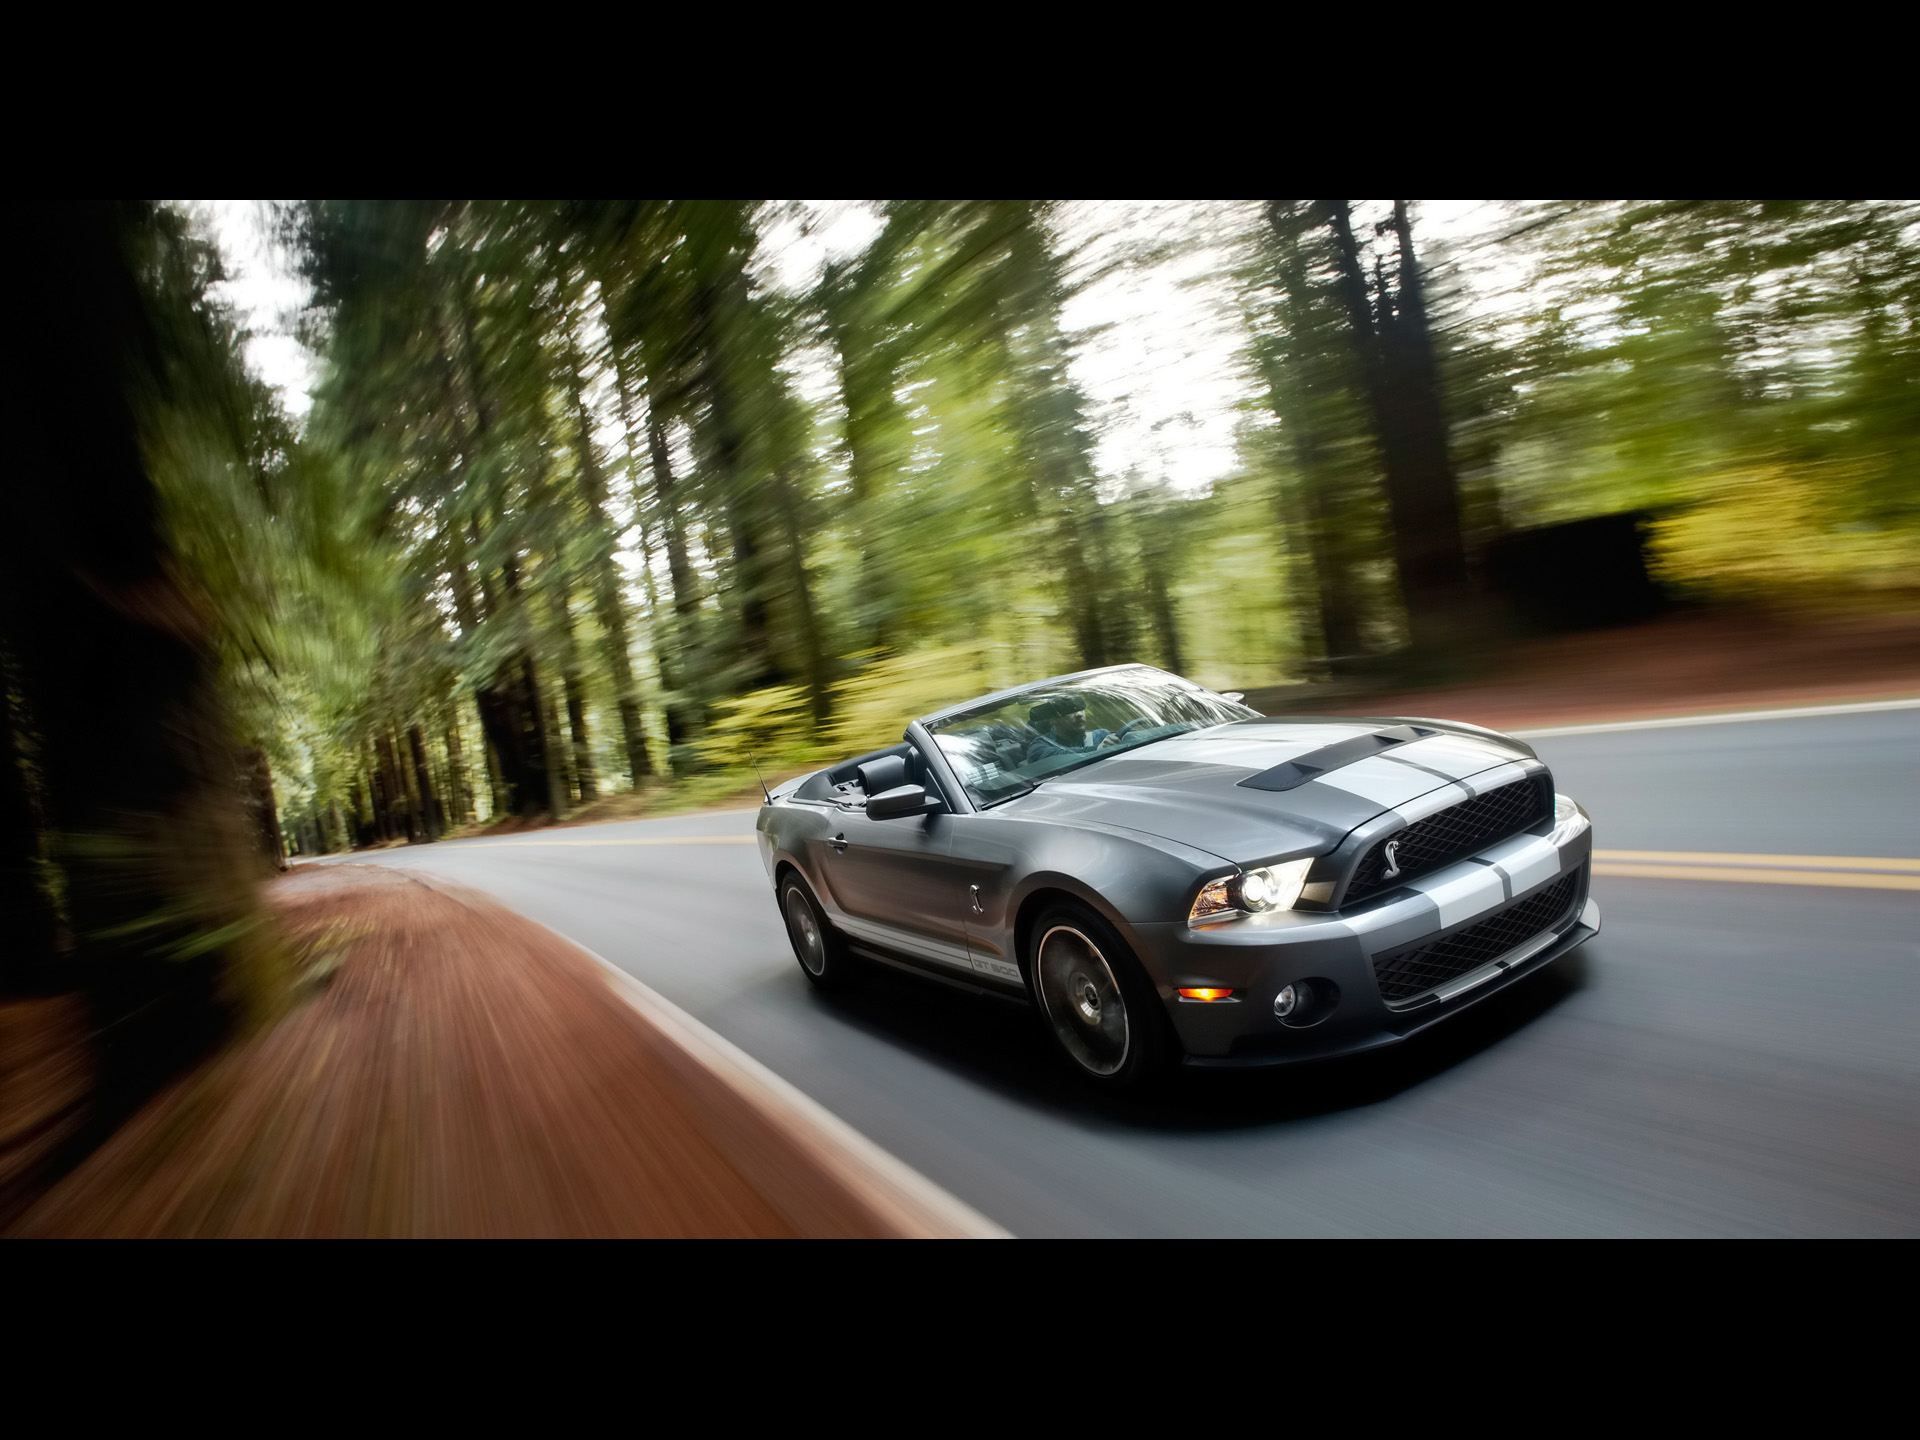 Ford Shelby Gt500 Speed 4 Wallpapers Ford Shelby Gt500 Speed 4